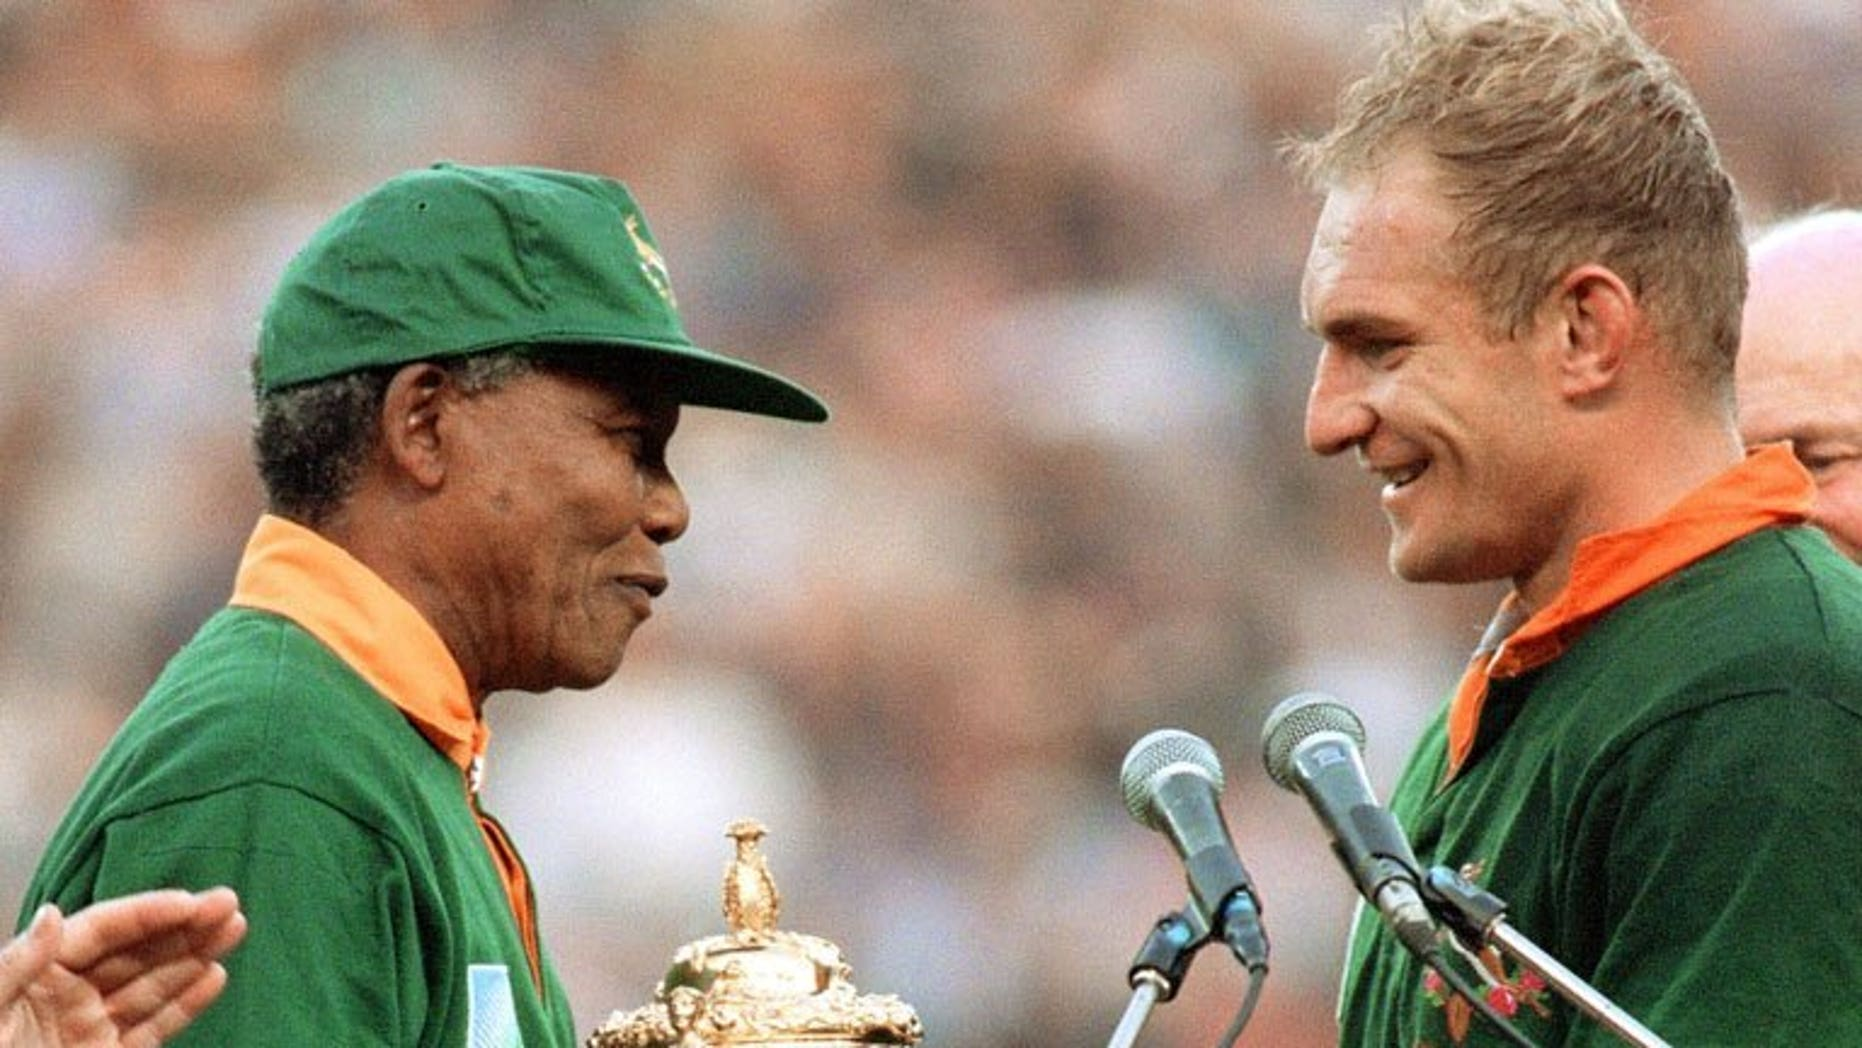 South Africa's then president Nelson Mandela (L) hands national rugby team captain Francois Pienaar the Webb Ellis Cup after South Africa won the 1995 Rugby World Cup final at Ellis Park Stadium, Johannesburg on June 24, 1995. With Mandela critically ill in hospital, South Africans on Monday recalled the day exactly 18 years ago when their team won the World Cup and Mandela won over the nation.